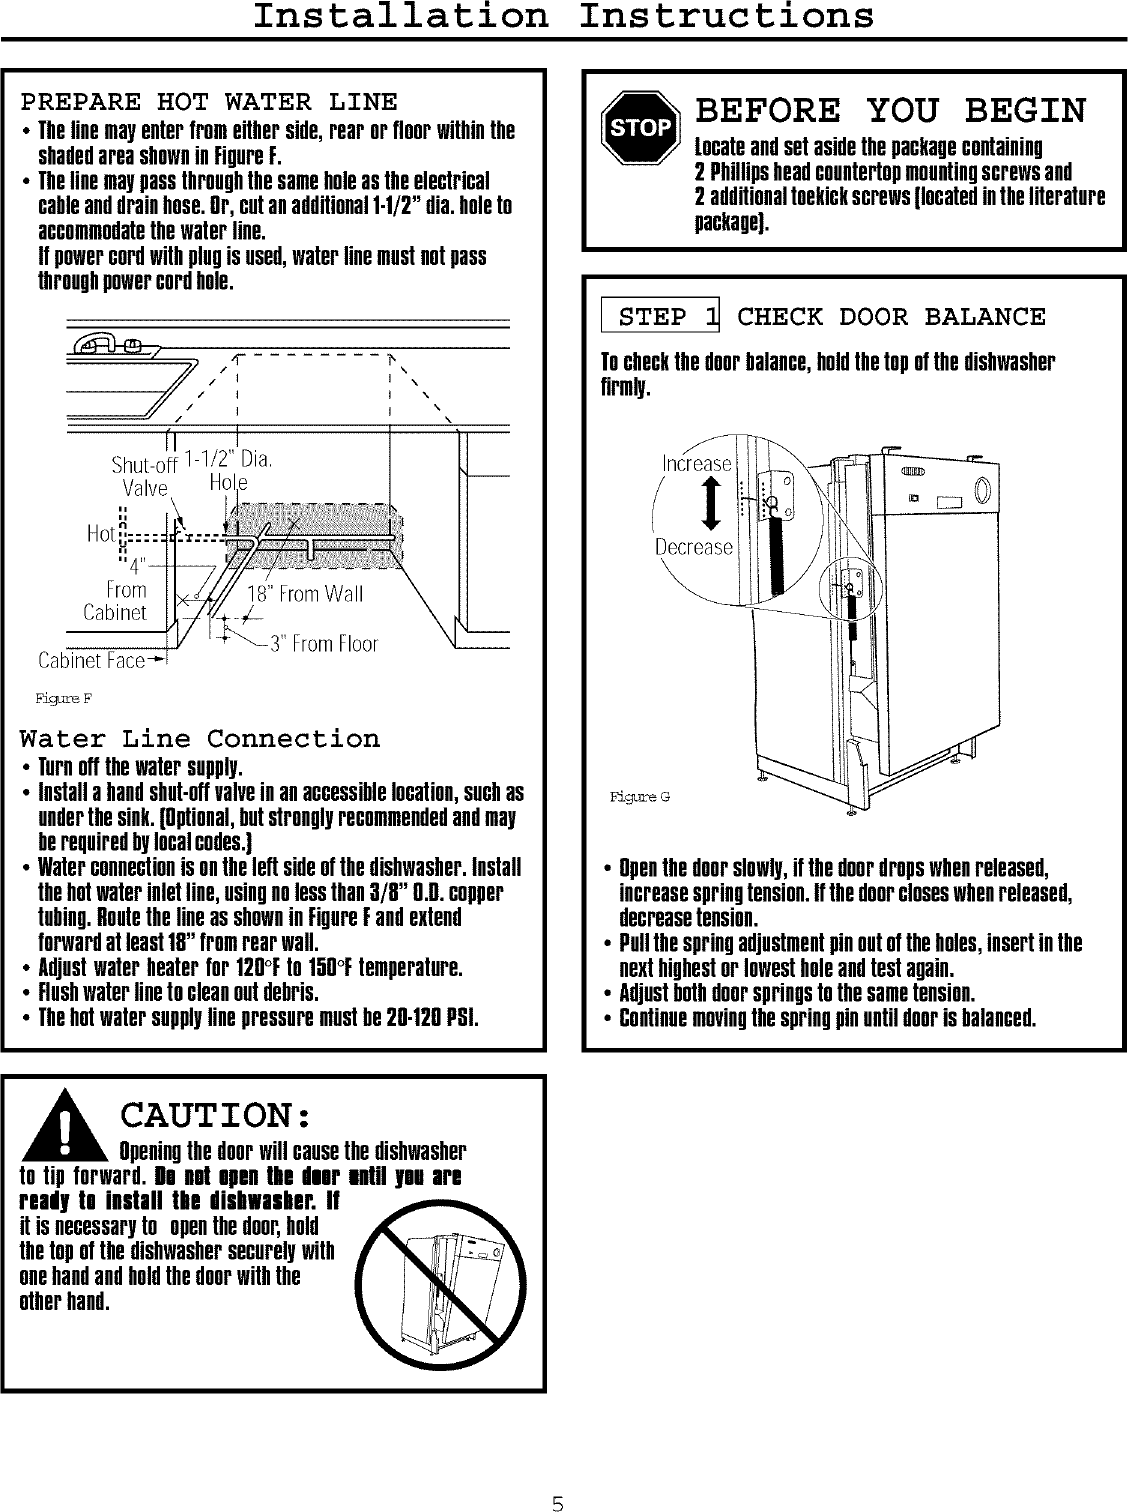 hight resolution of page 5 of 12 frigidaire fmb330rgs0 user manual dishwasher manuals and guides l0709007